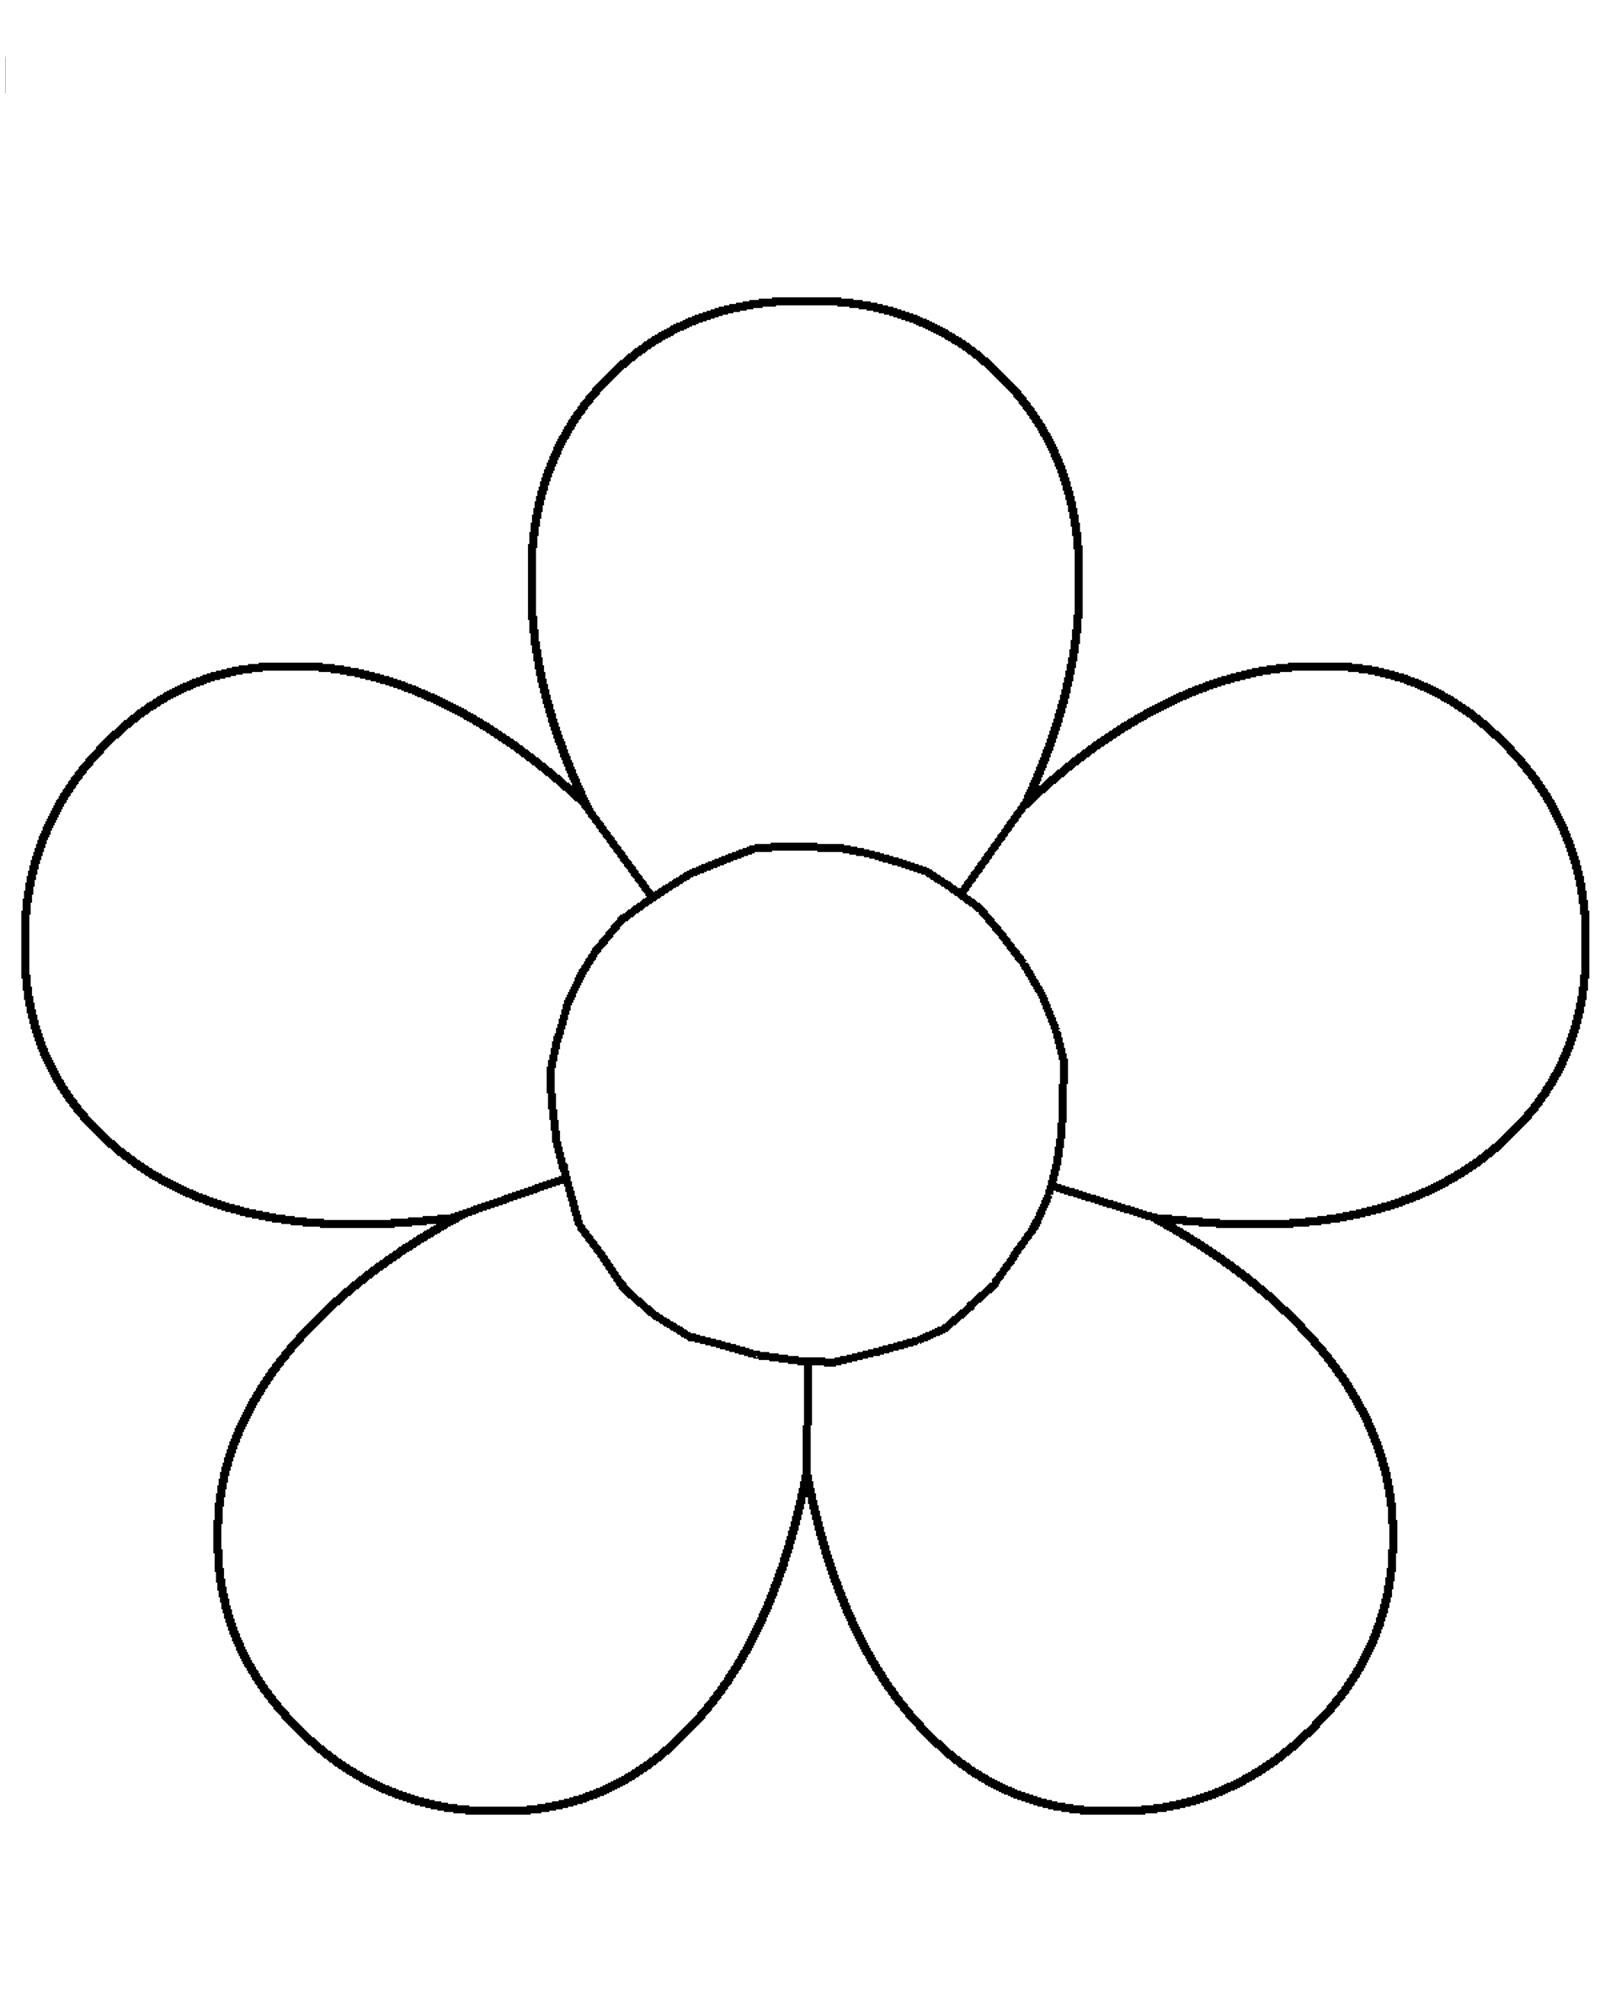 Flower Template Images - Reverse Search